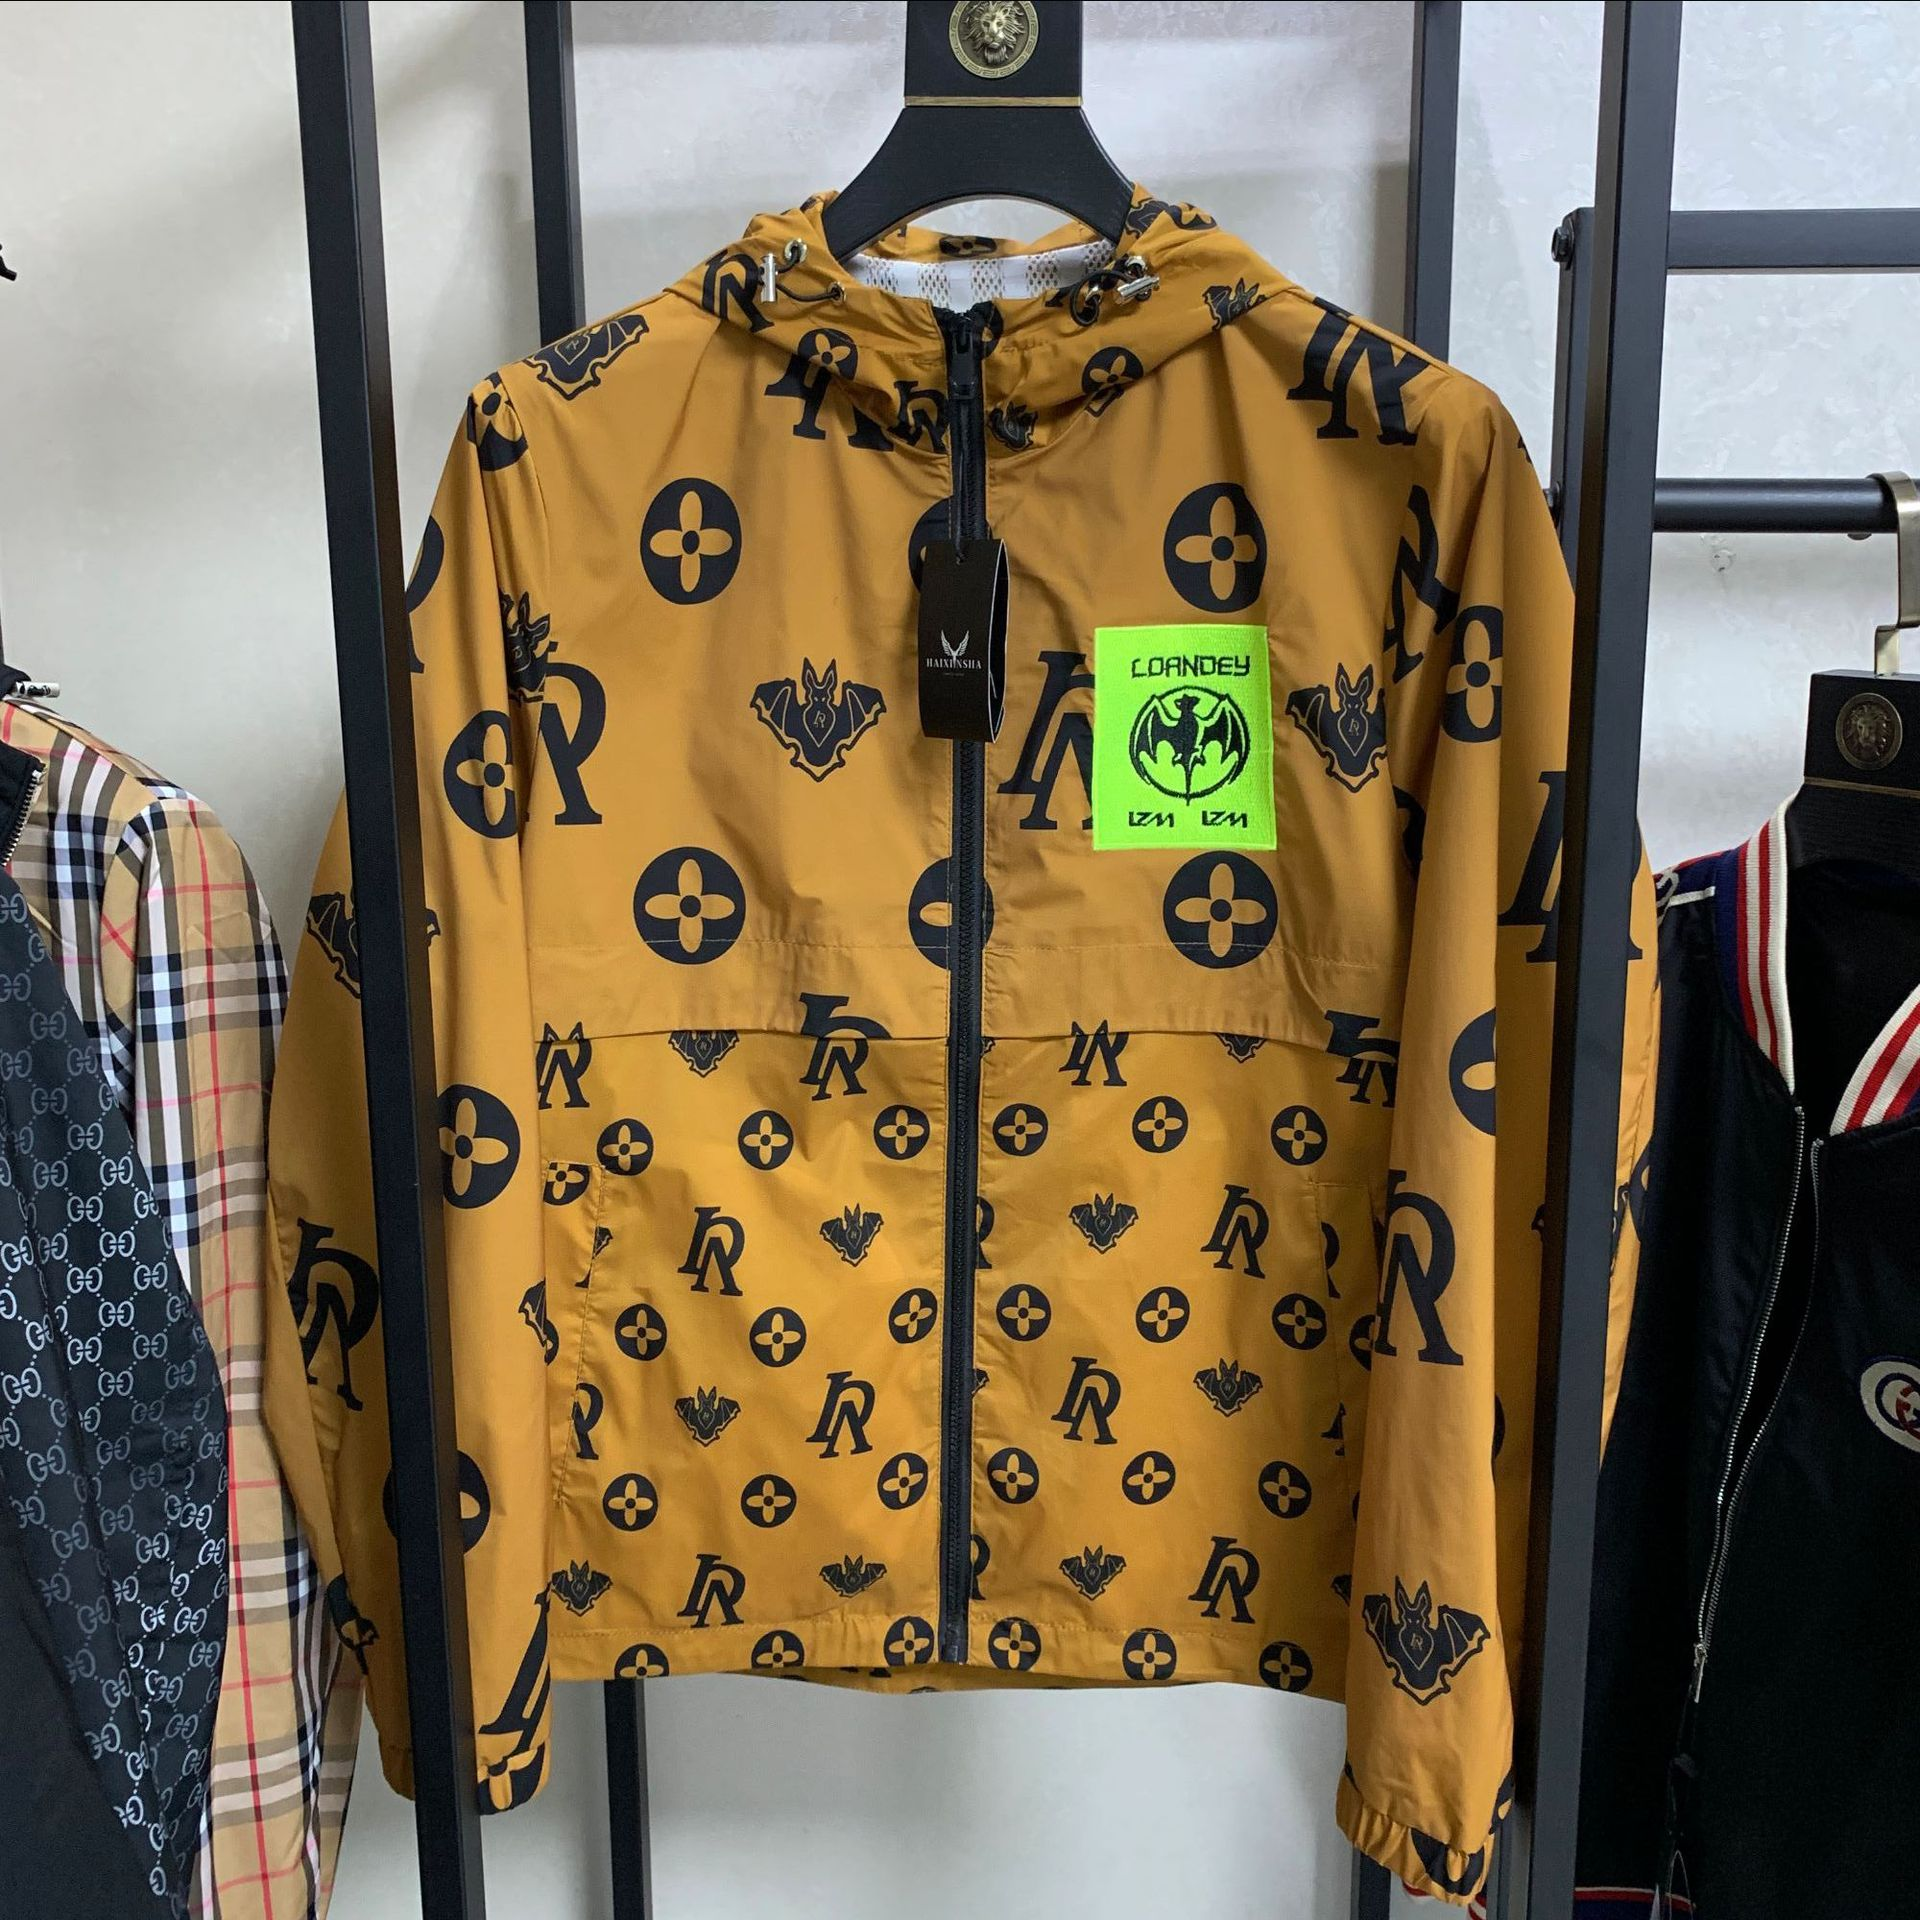 European station coat 2020 spring new jacket mens fashion cool trend casual hooded fashion brand printed European thin goods